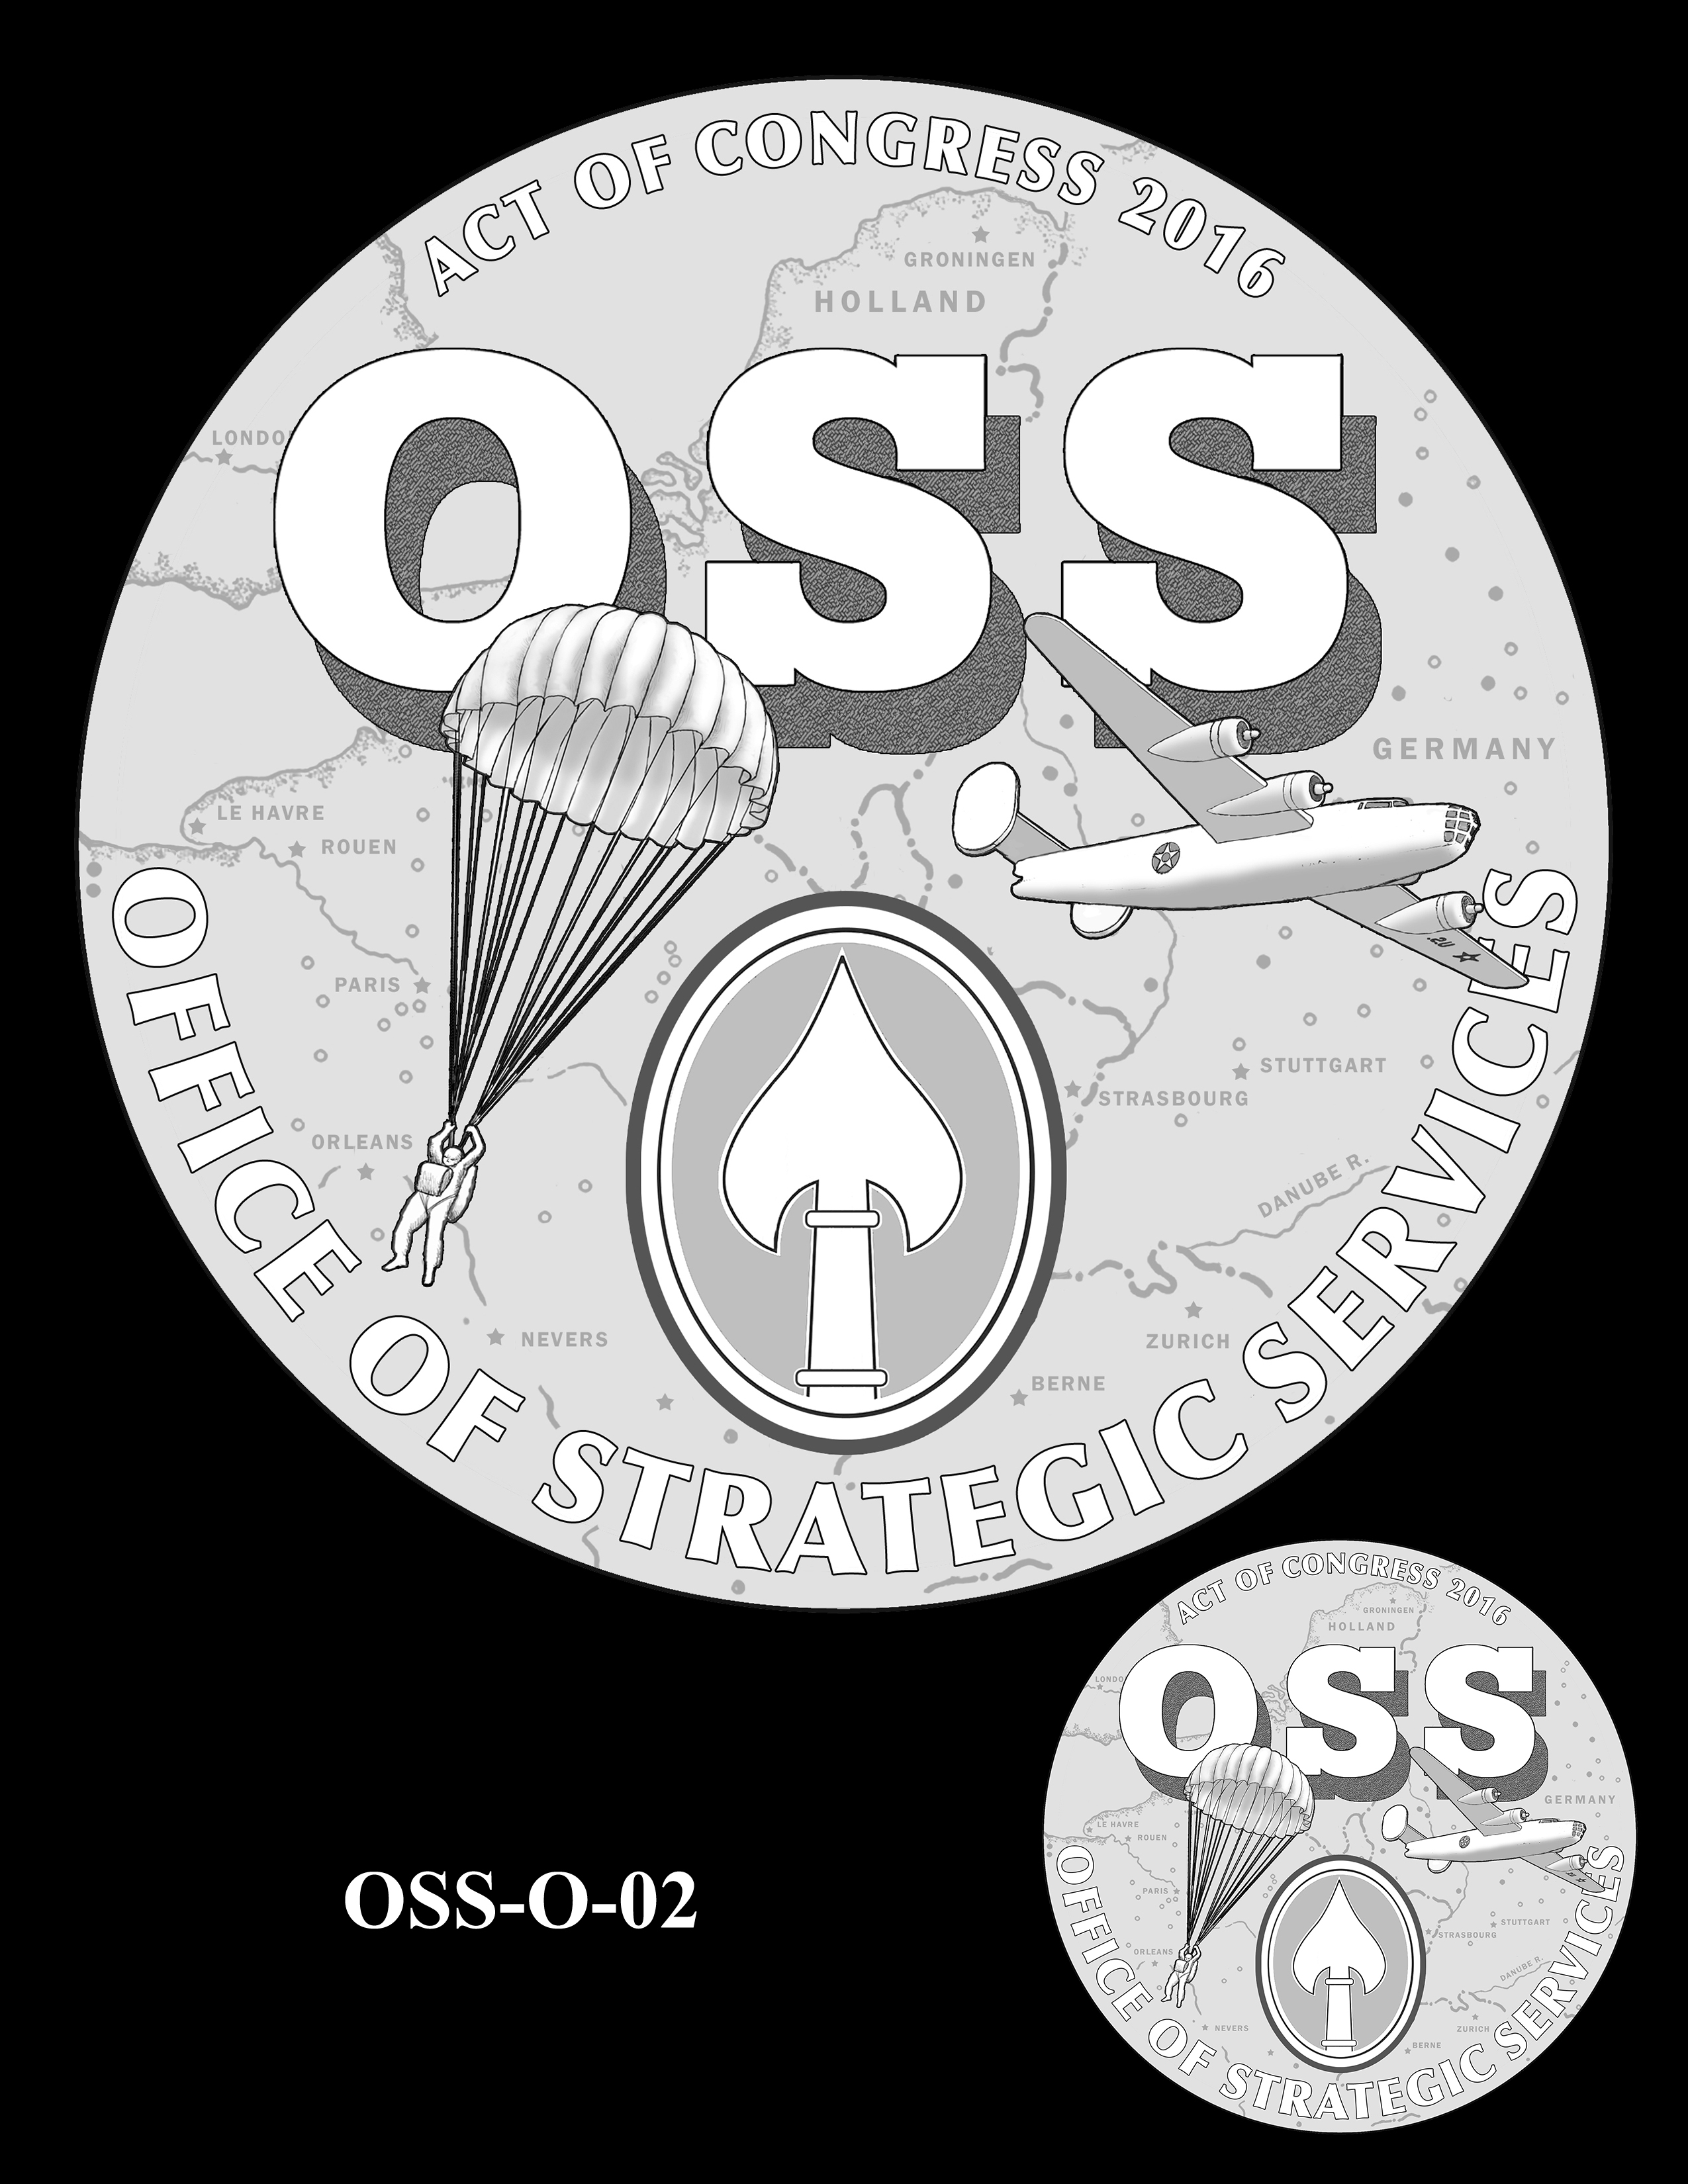 OSS-O-02 -- Office of Strategic Services Congressional Gold Medal